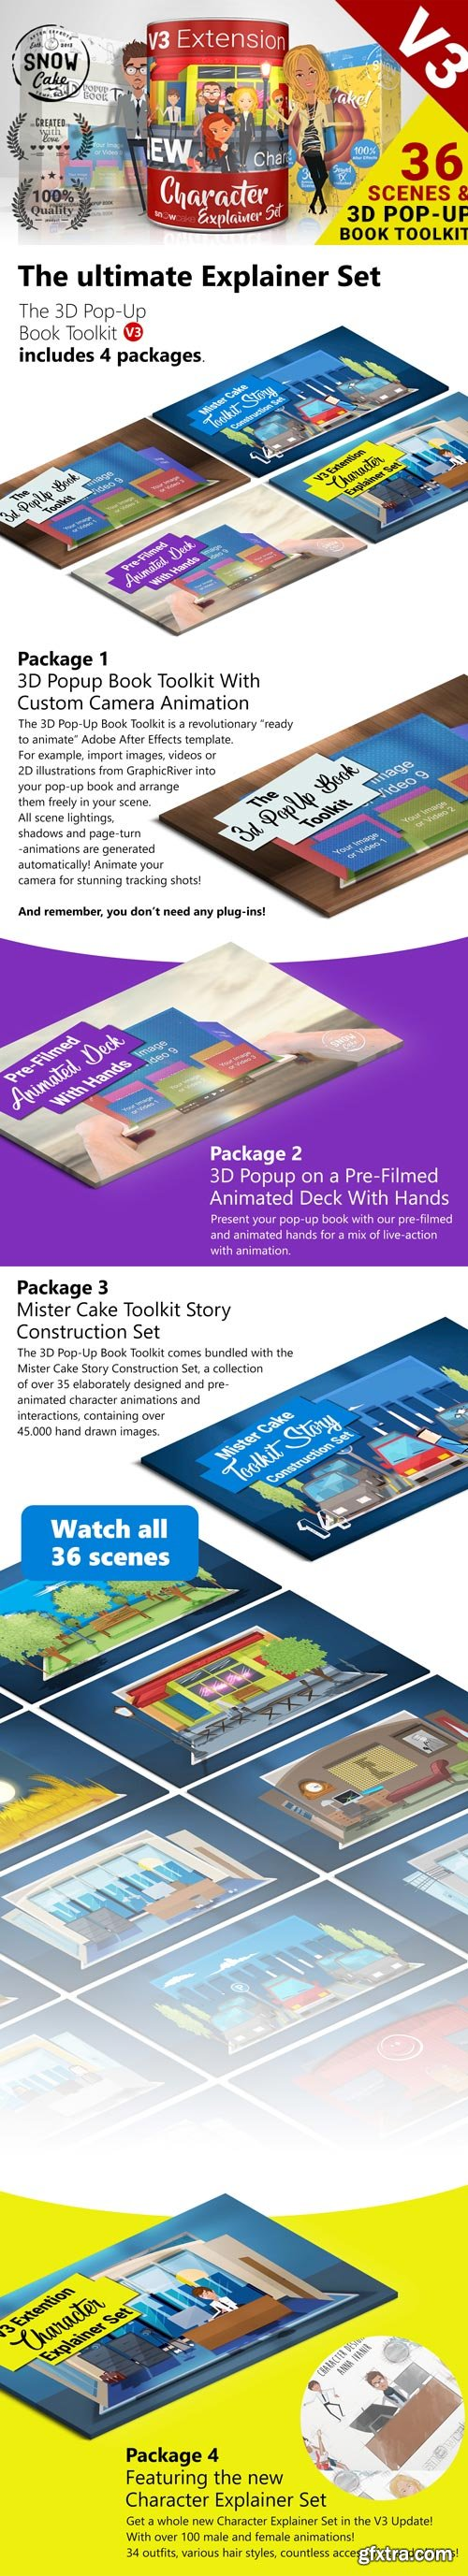 Videohive - 3D Pop-Up Book Toolkit featuring Mister Cake   Toolkit & Story Construction Set V3 - 19845454